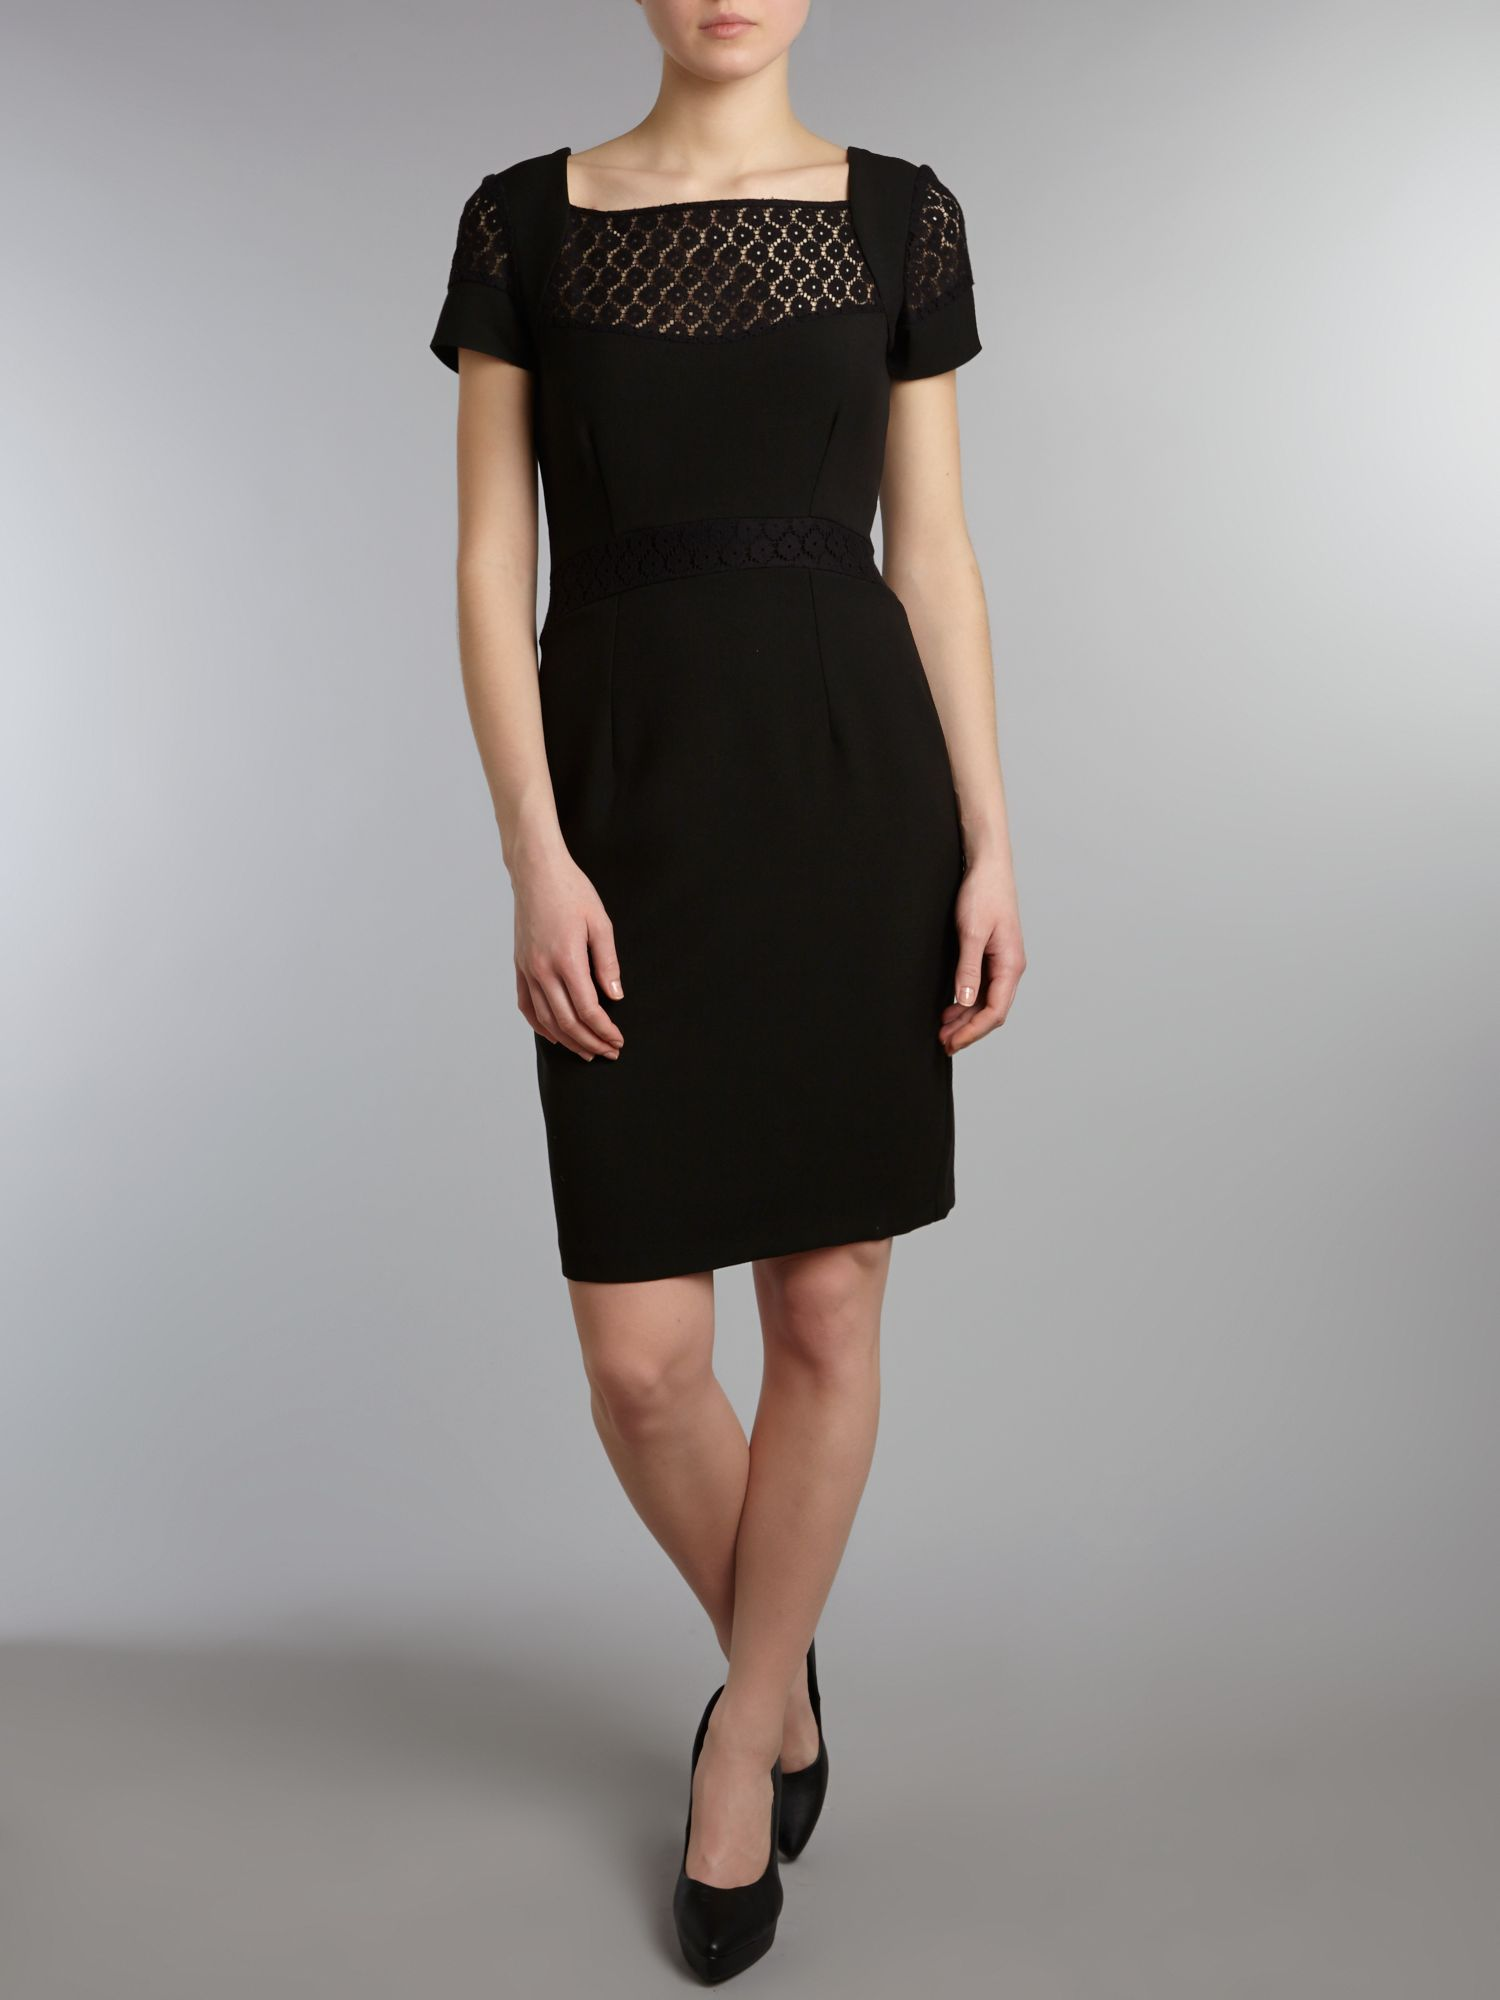 Lace contrast pencil dress